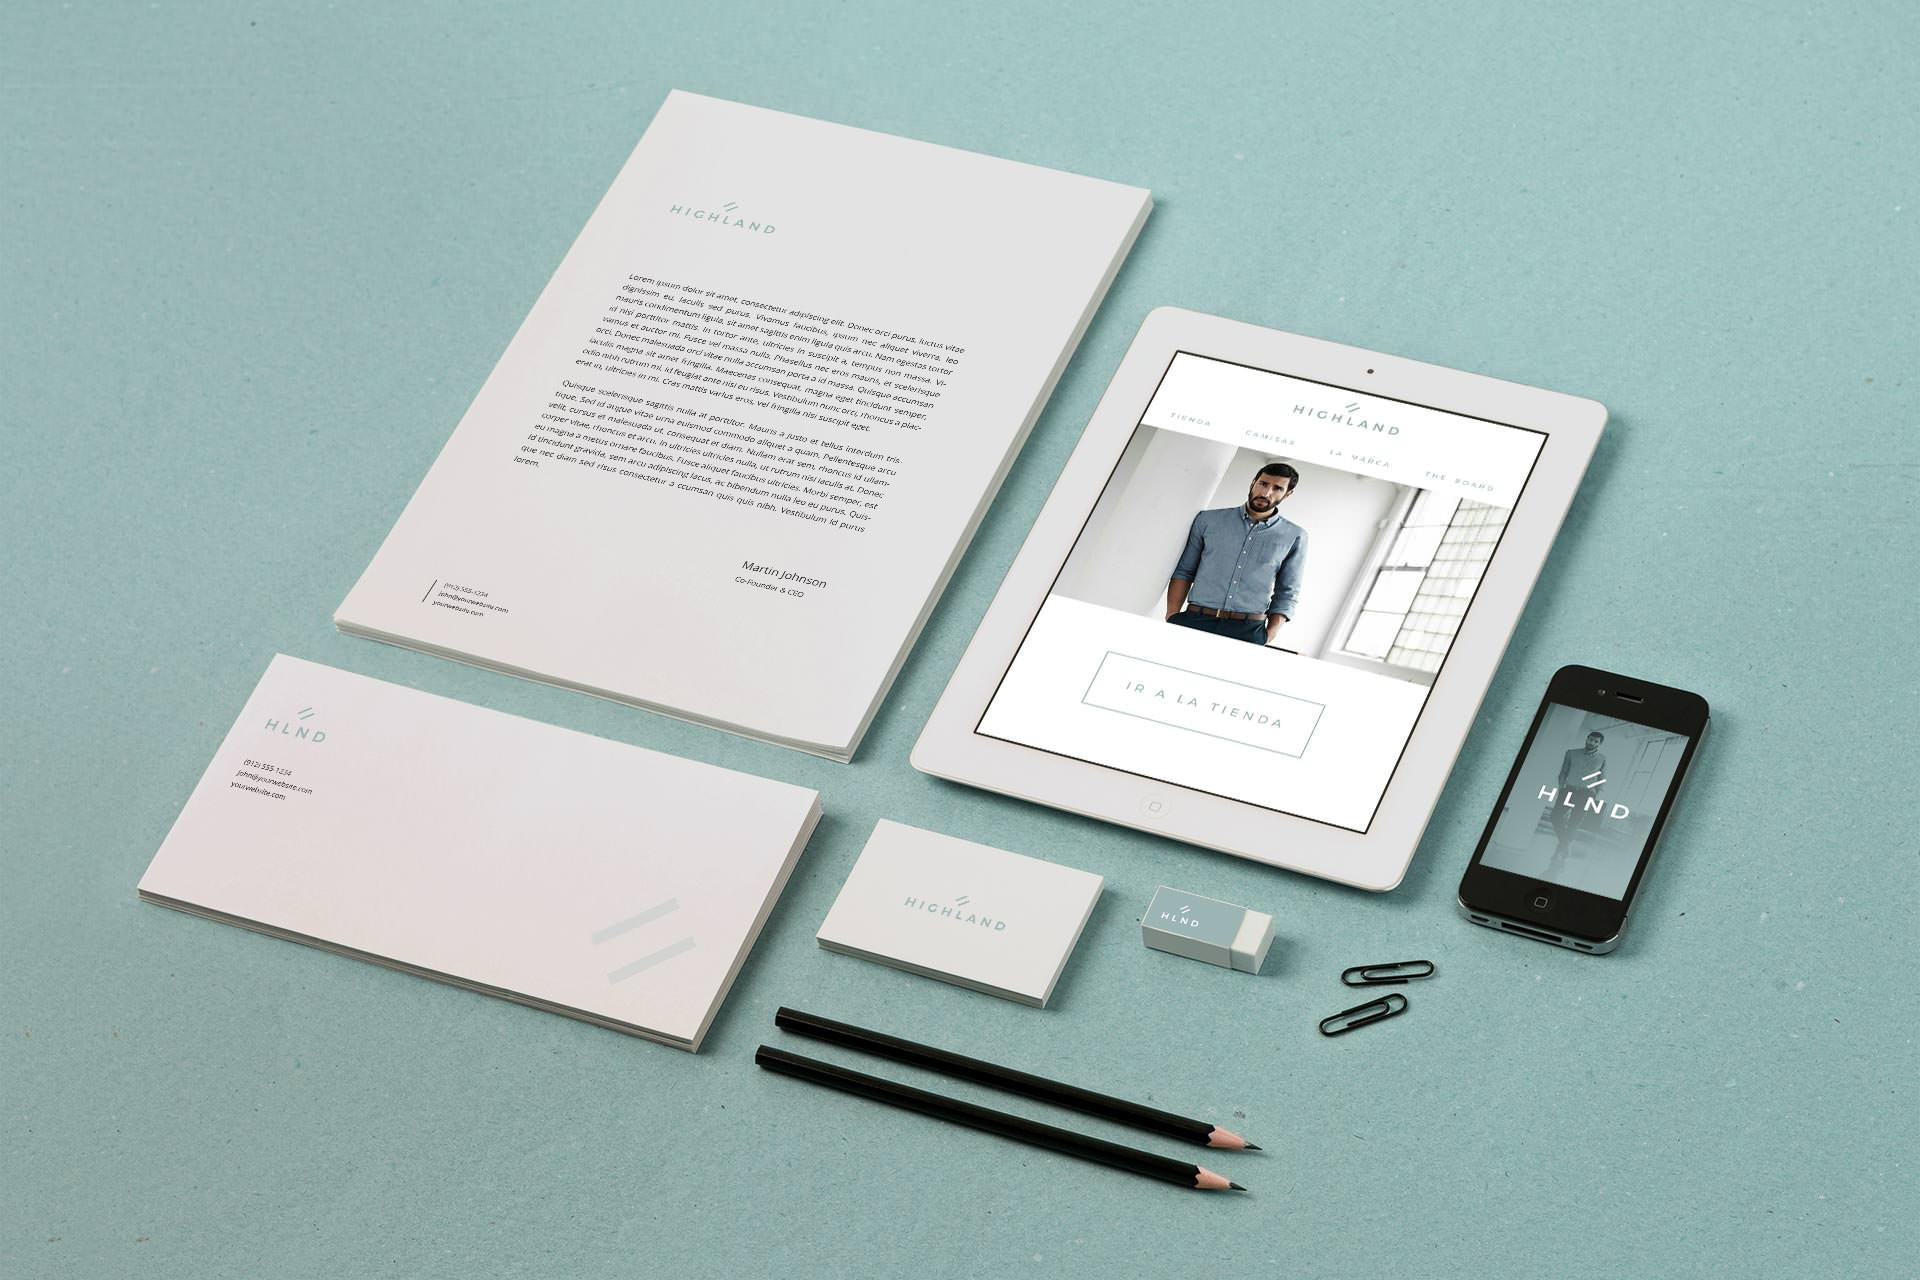 Corporate image application on different formats